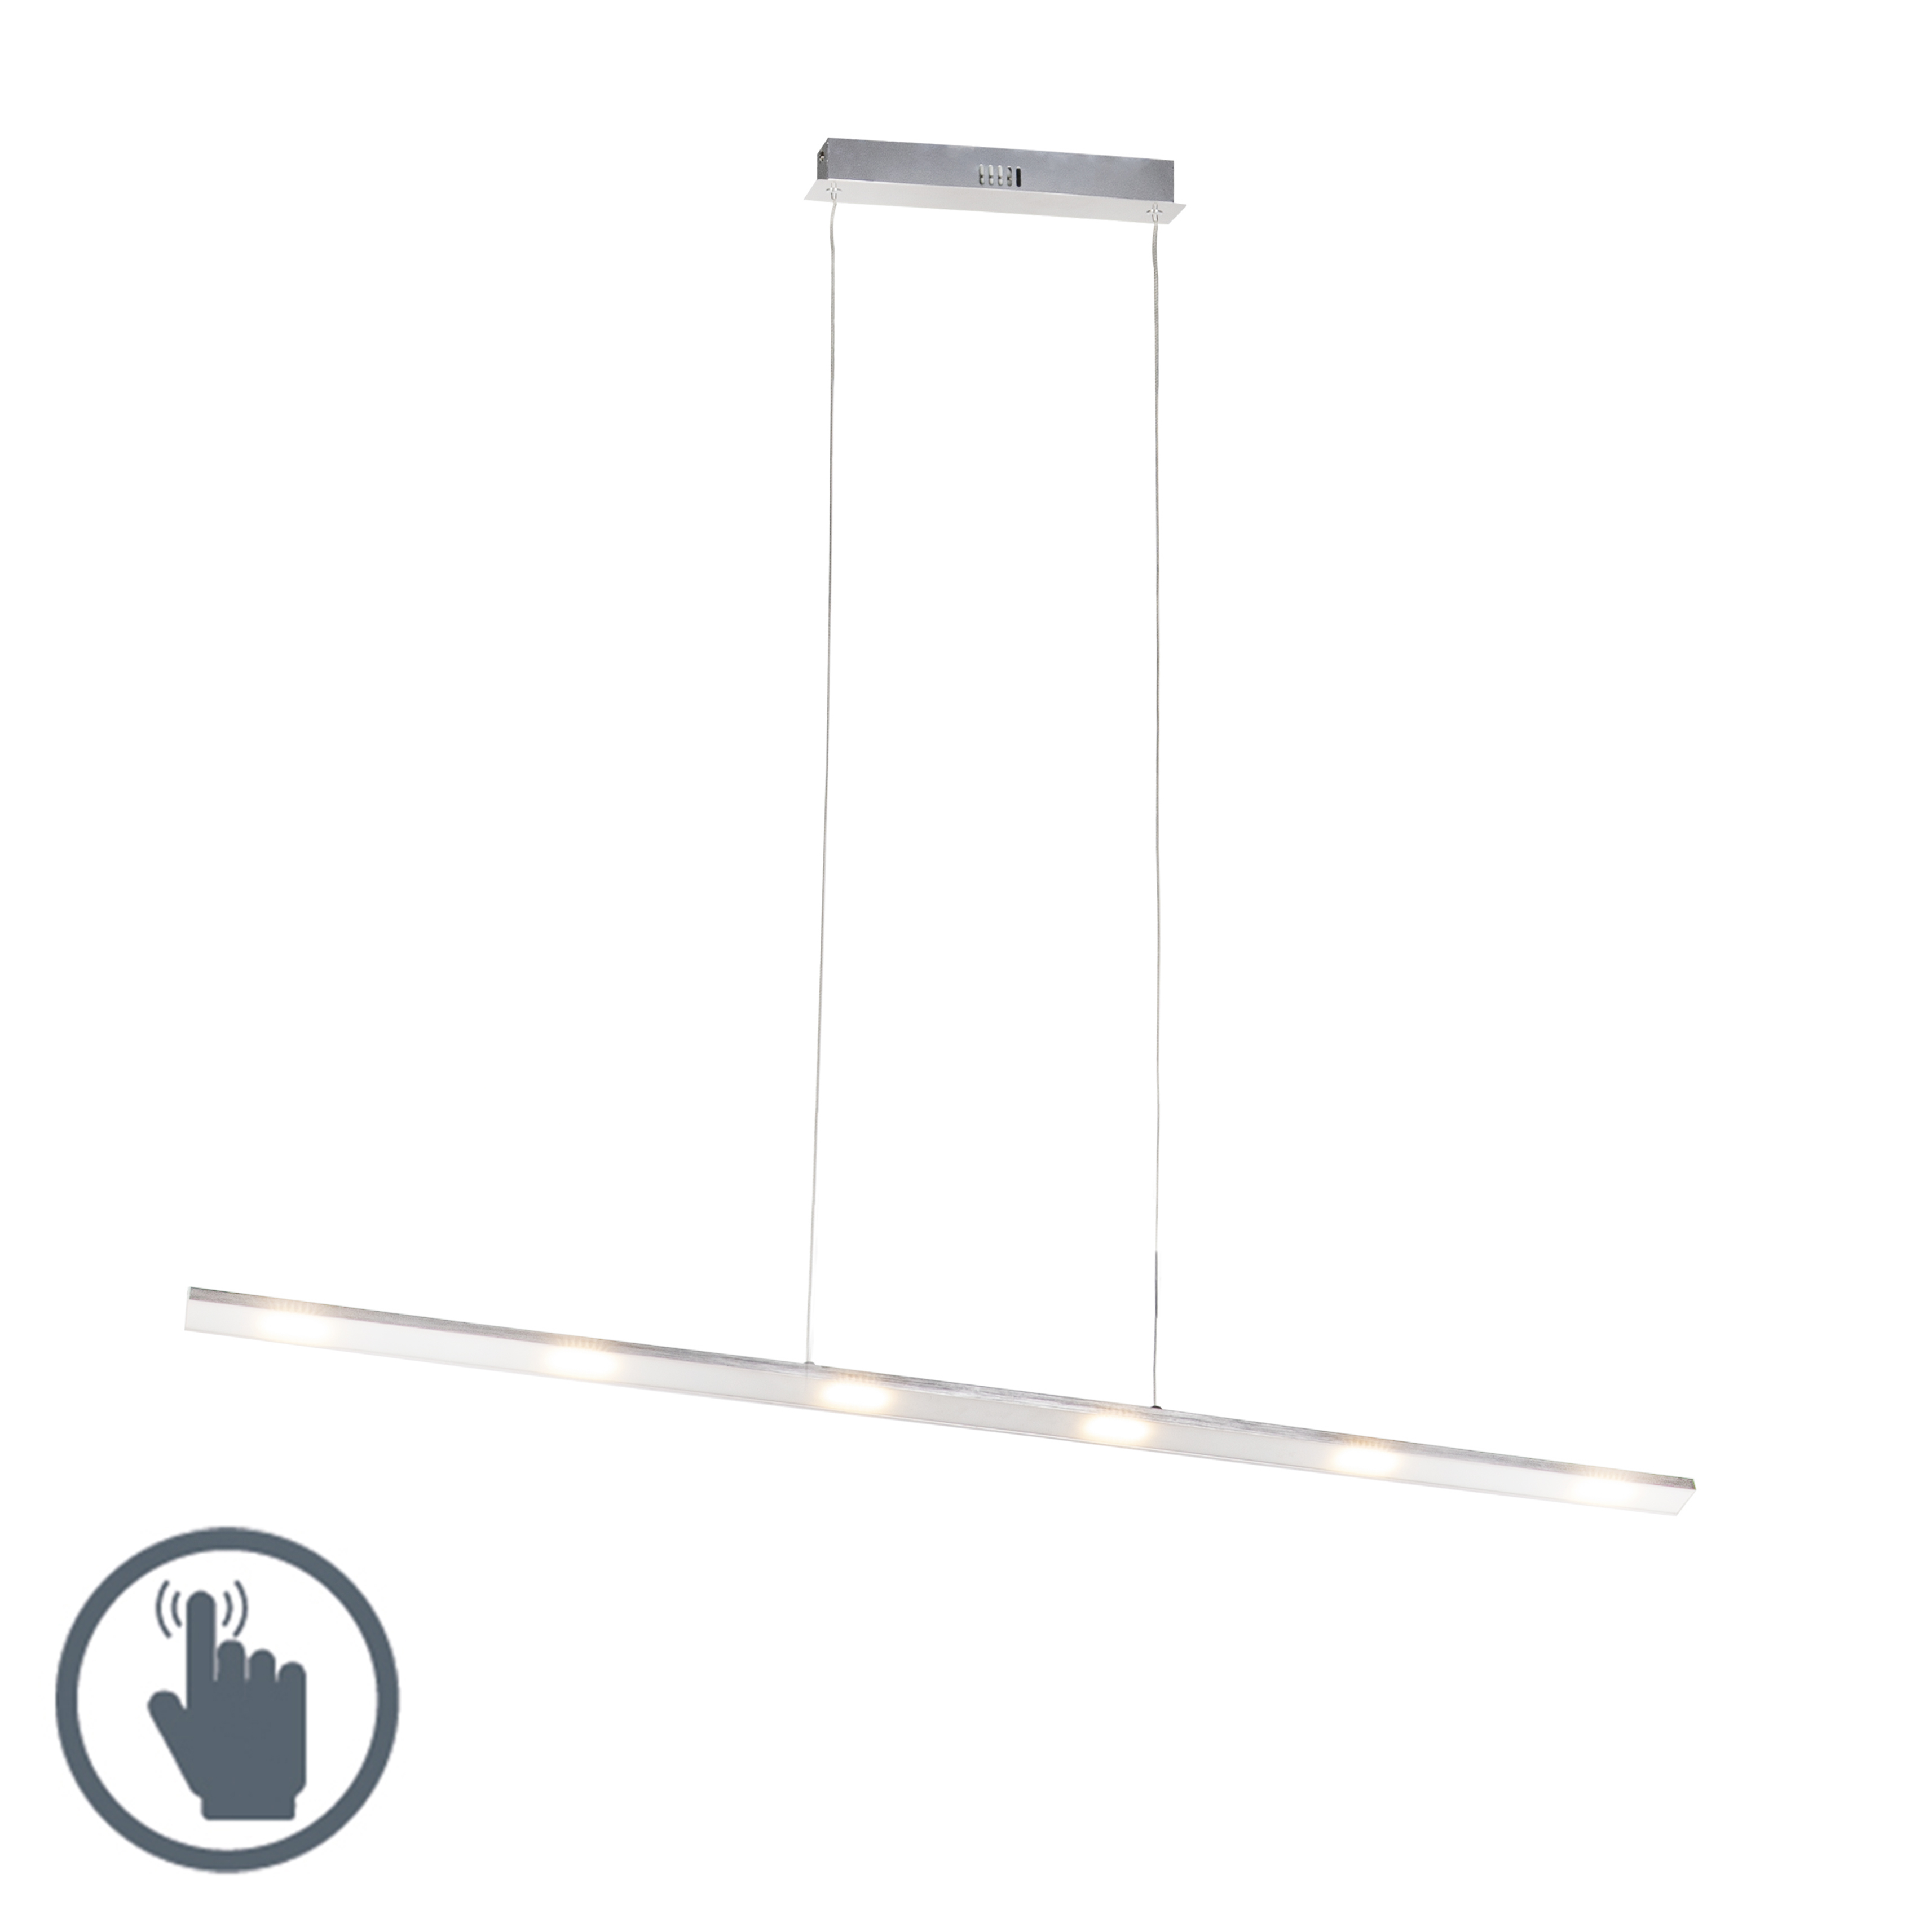 Design Hanglamp Staal Touch-dimmer 120cm Incl. Led - Platina